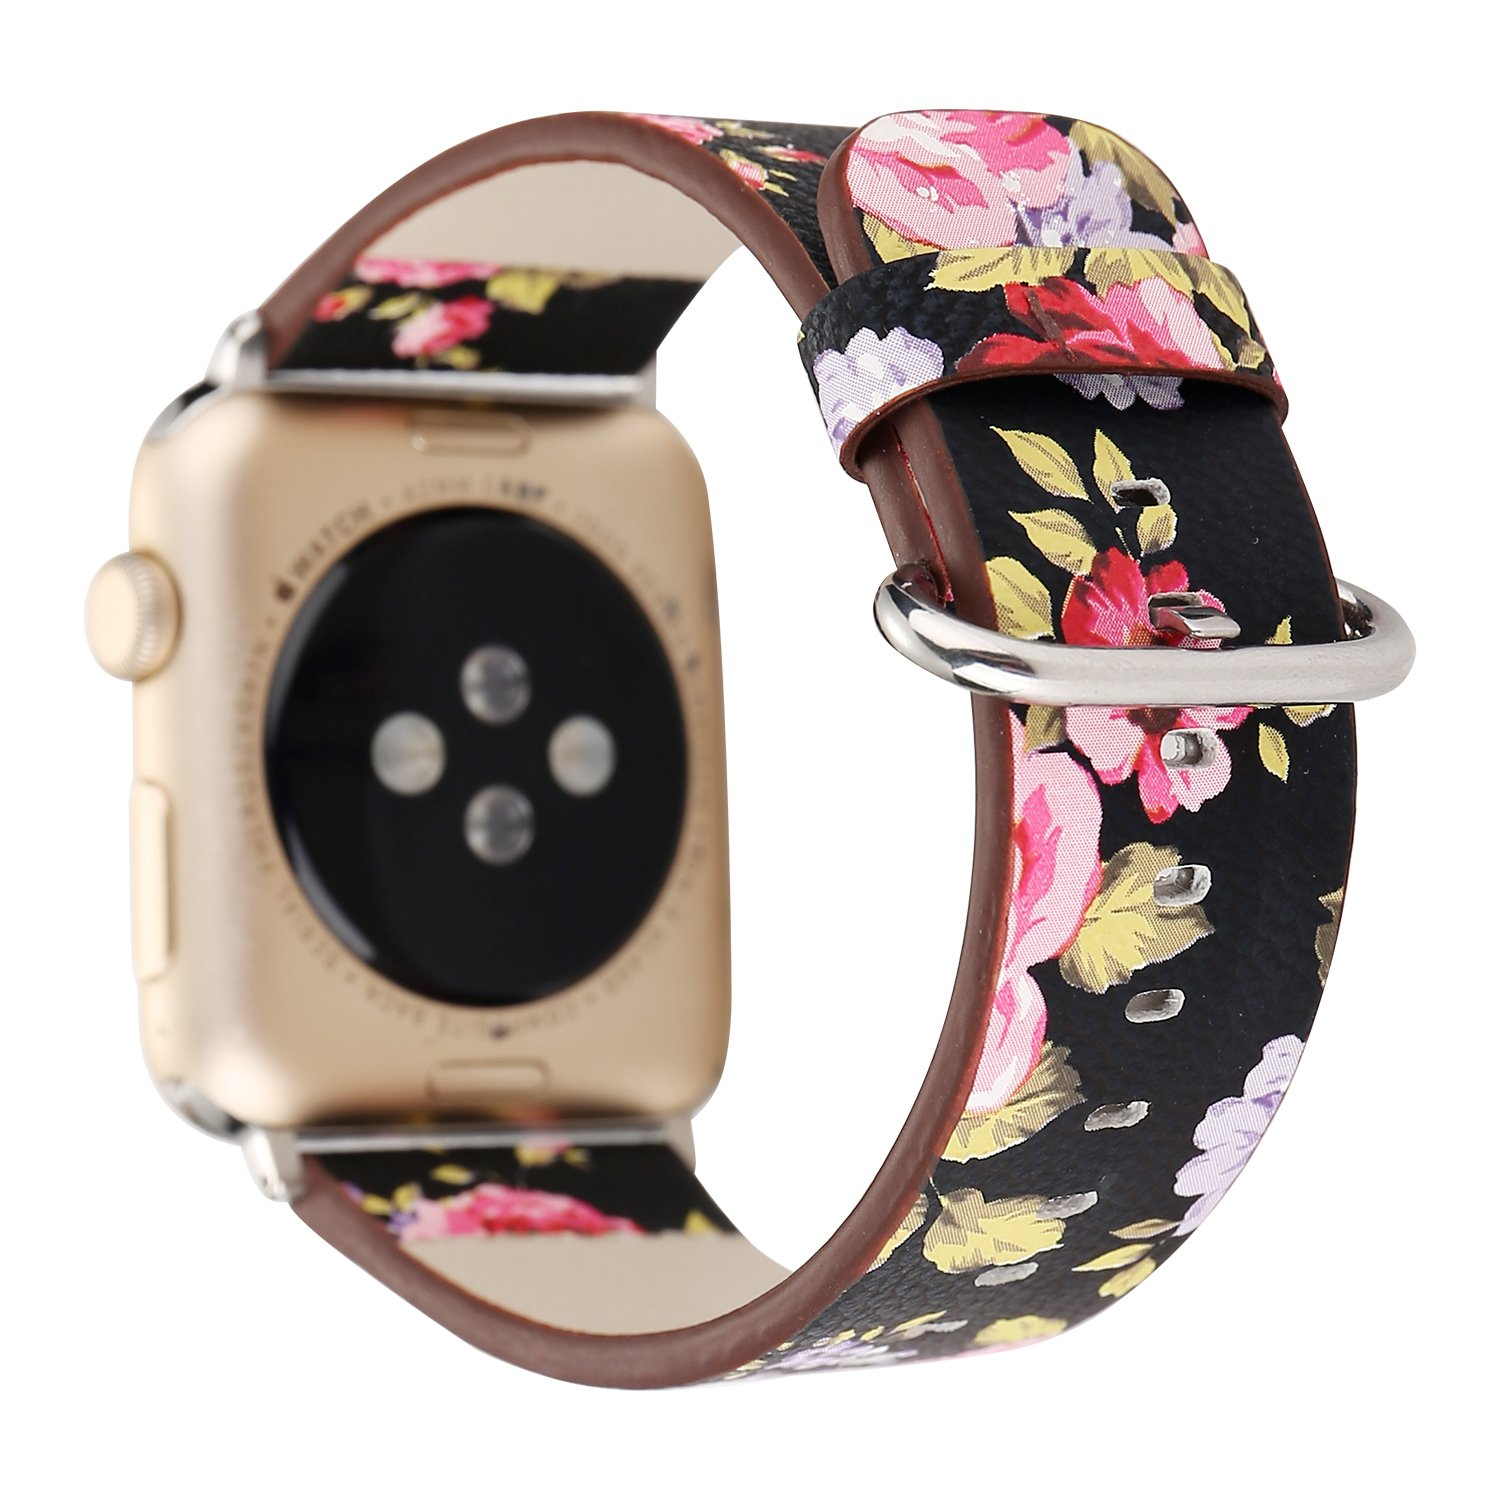 Flower Design Strap for iWatch,38mm 42mm Floral Pattern Printed Leather Wrist Band Apple Watch Link Bracelet for Apple Watch Smartwatch Fitness Tracker Series 3 2 1 Version (Black+ Pink 38mm)